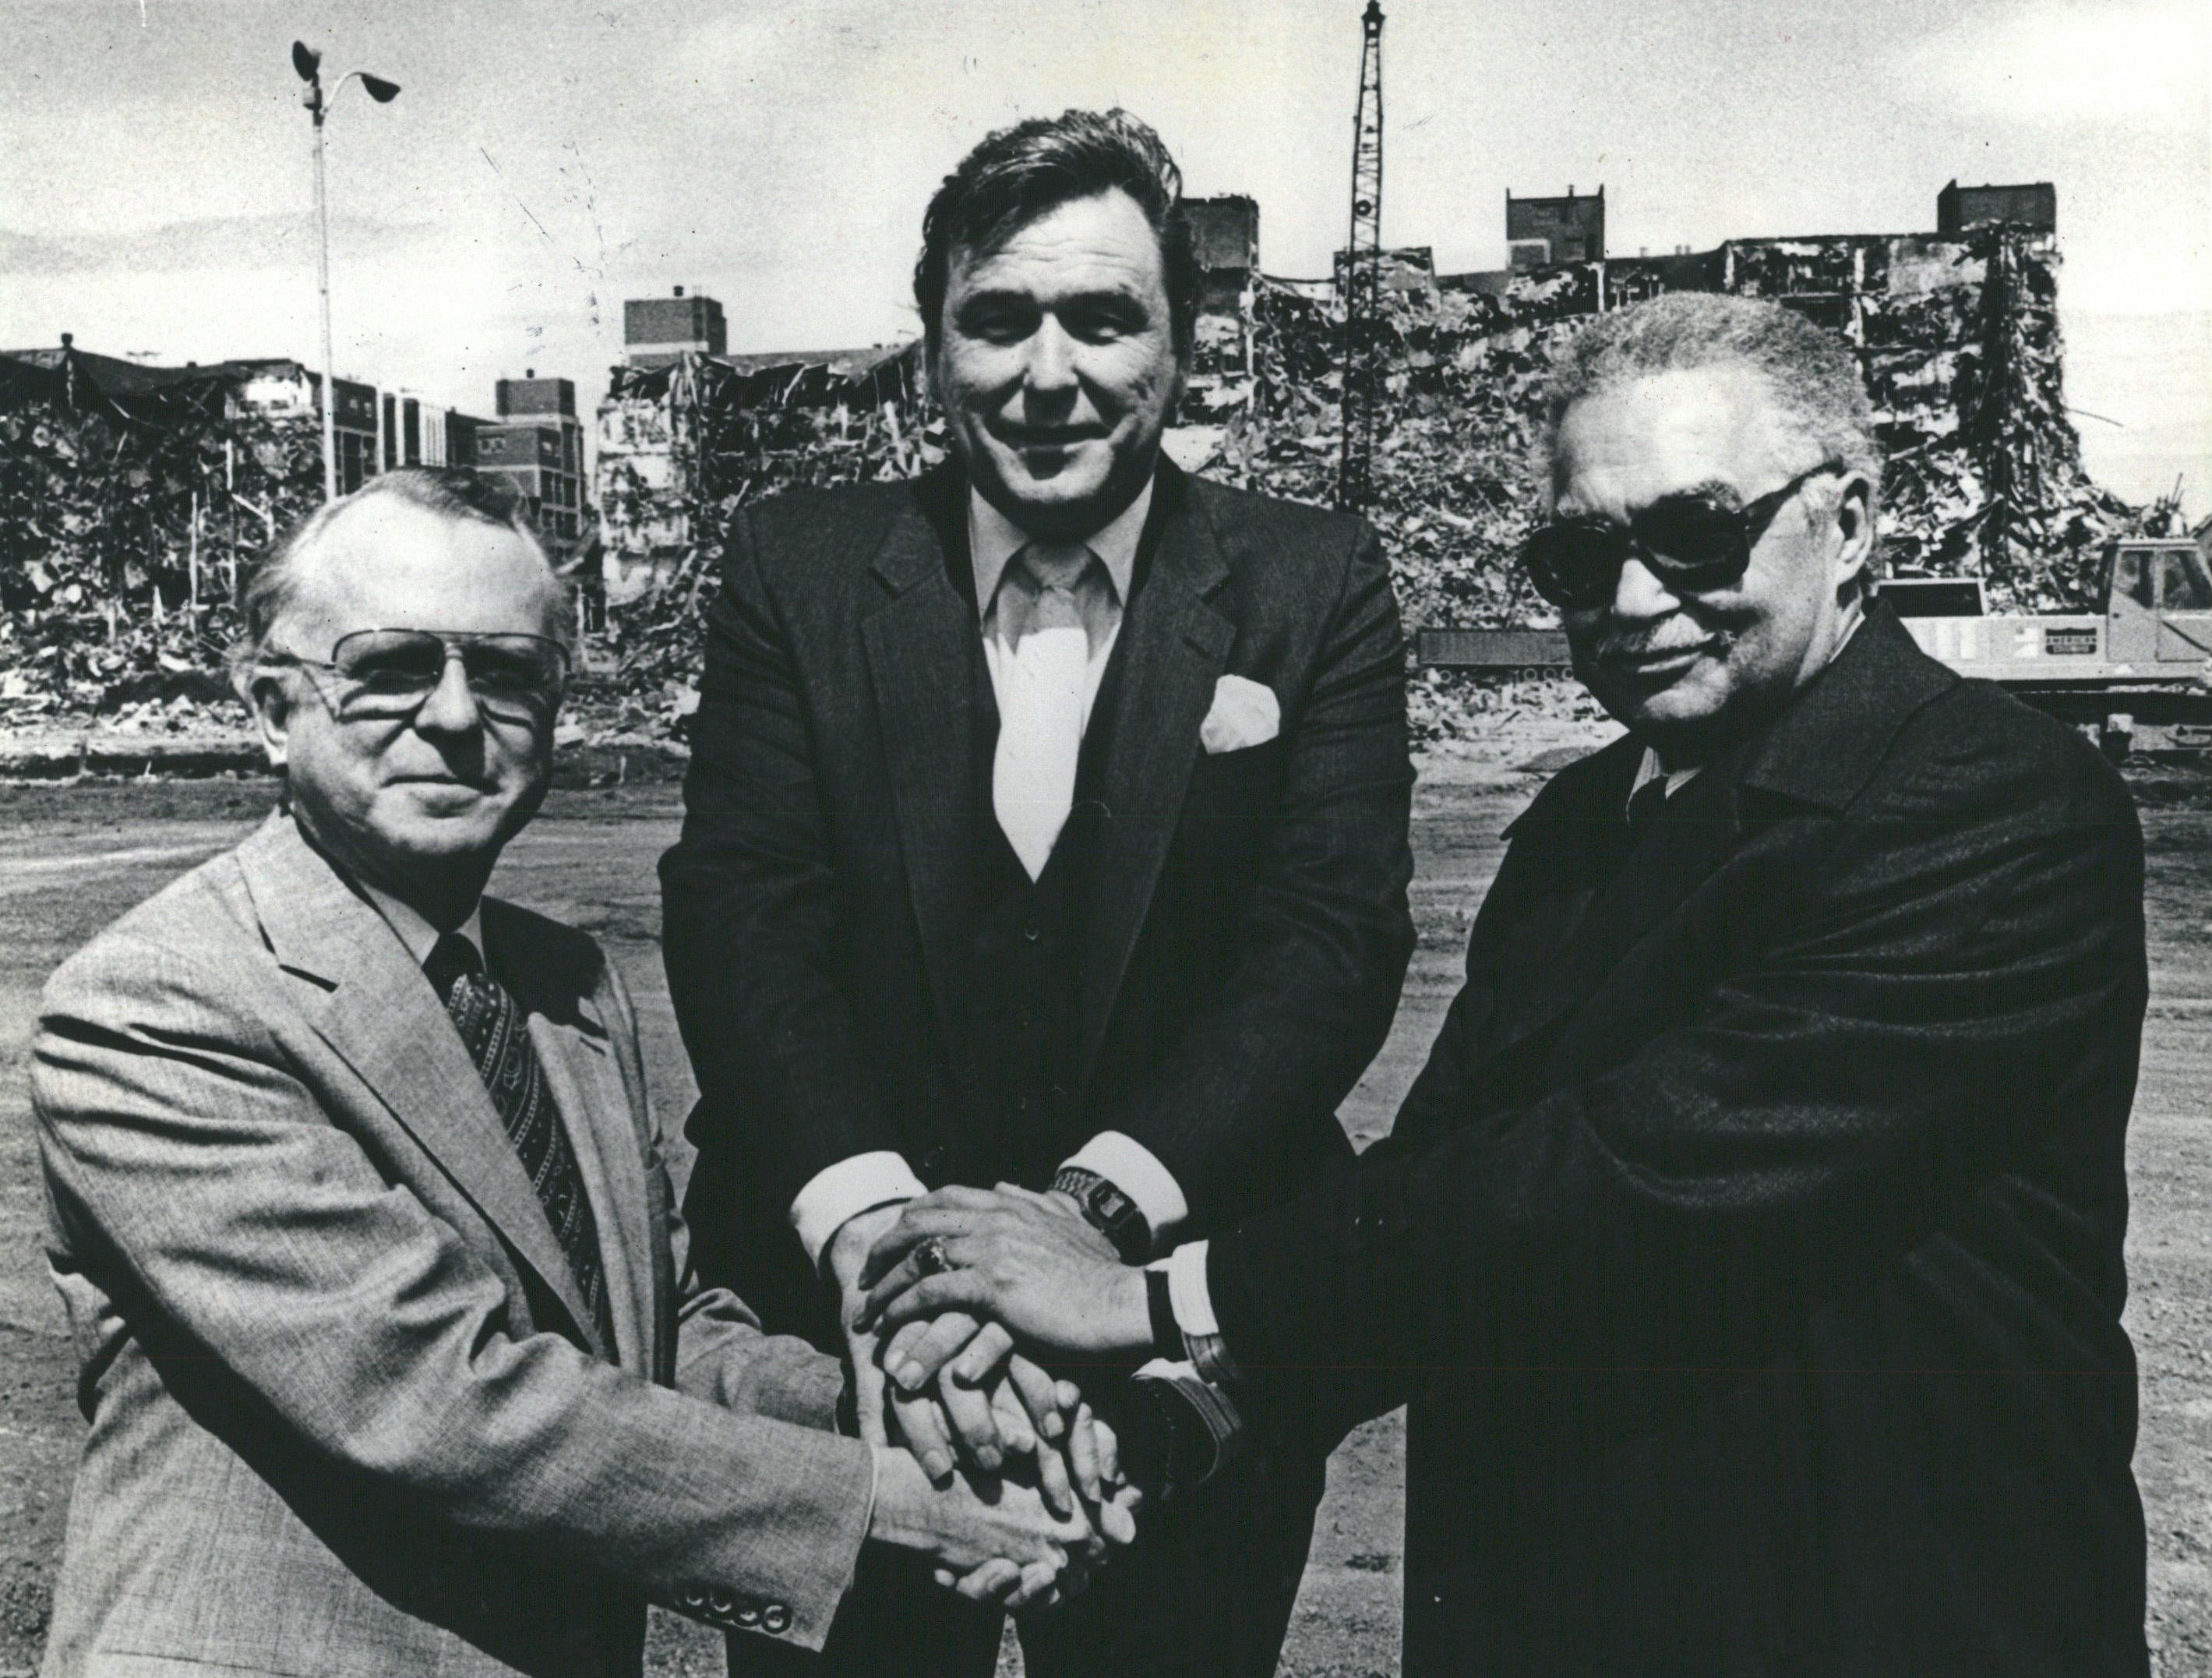 In May 1981, Mayor Young shakes hand with General Motors Chairman Roger Smith, on left, and Hamtramck Mayor Robert Kozaren at groundbreaking ceremonies for GM's Poletown project. Behind them is the wreckage of Dodge Main.